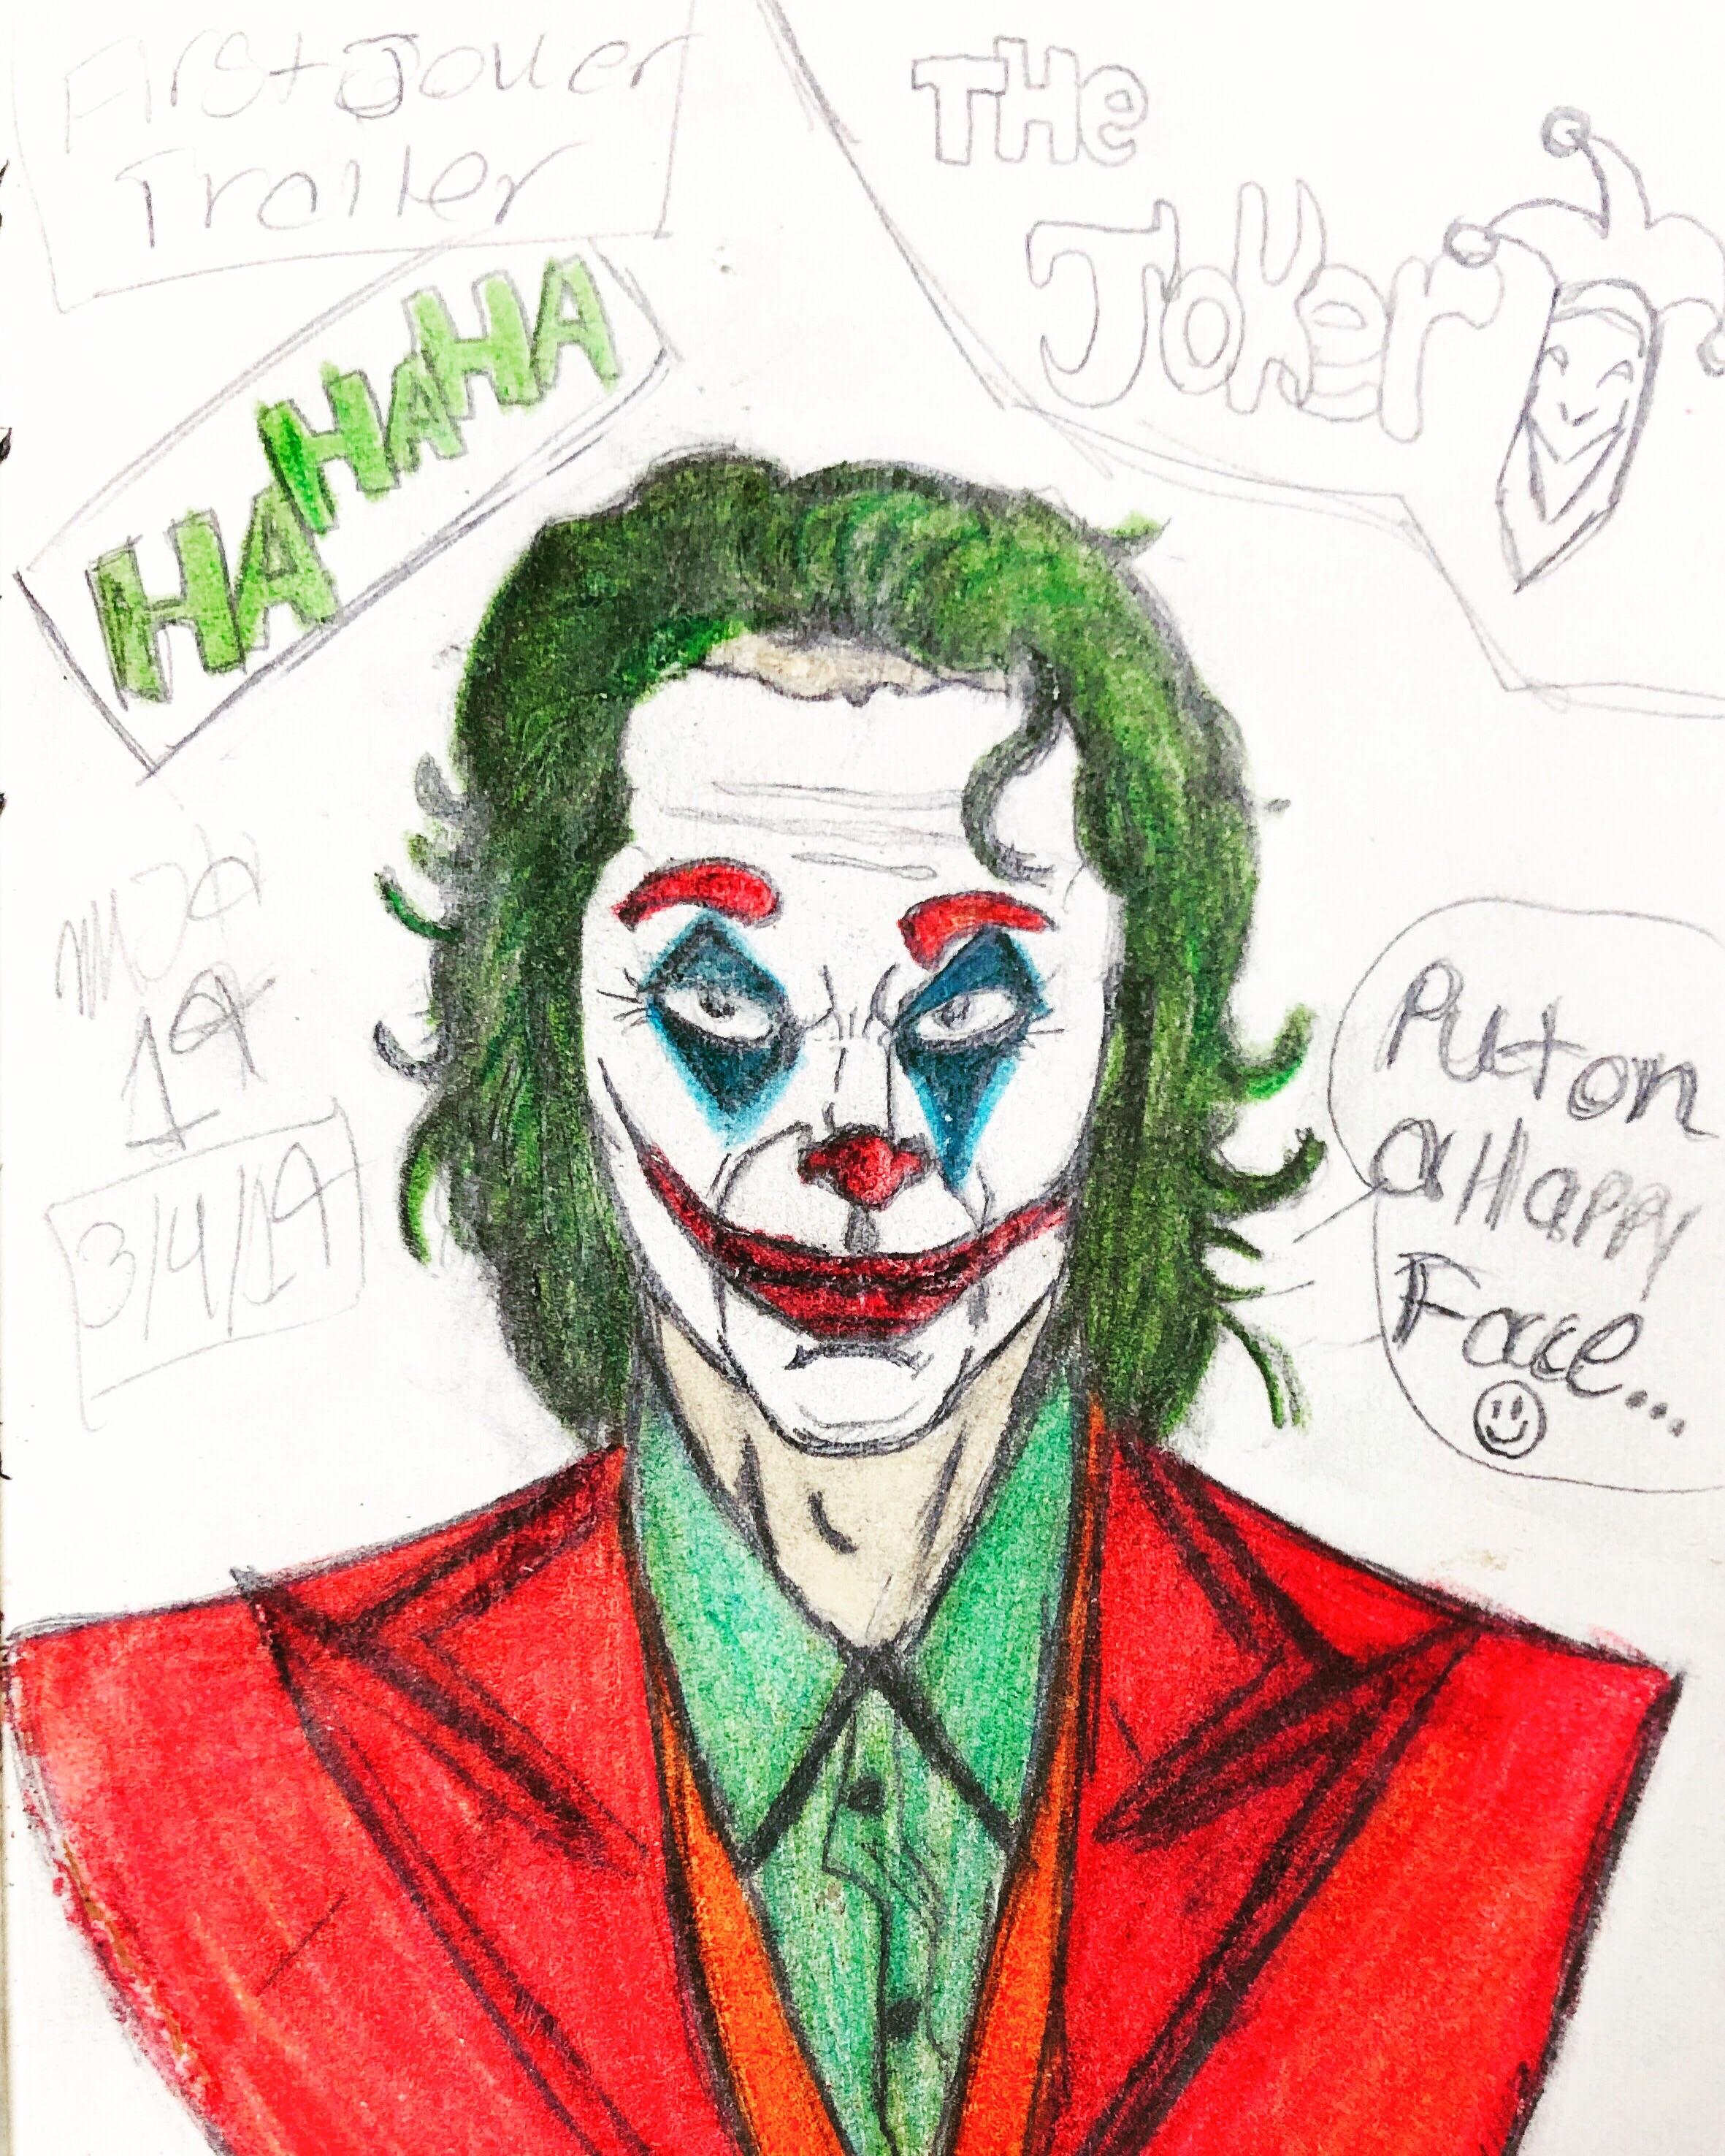 How To Draw Joker Face : joker, Joker, Images, Collection